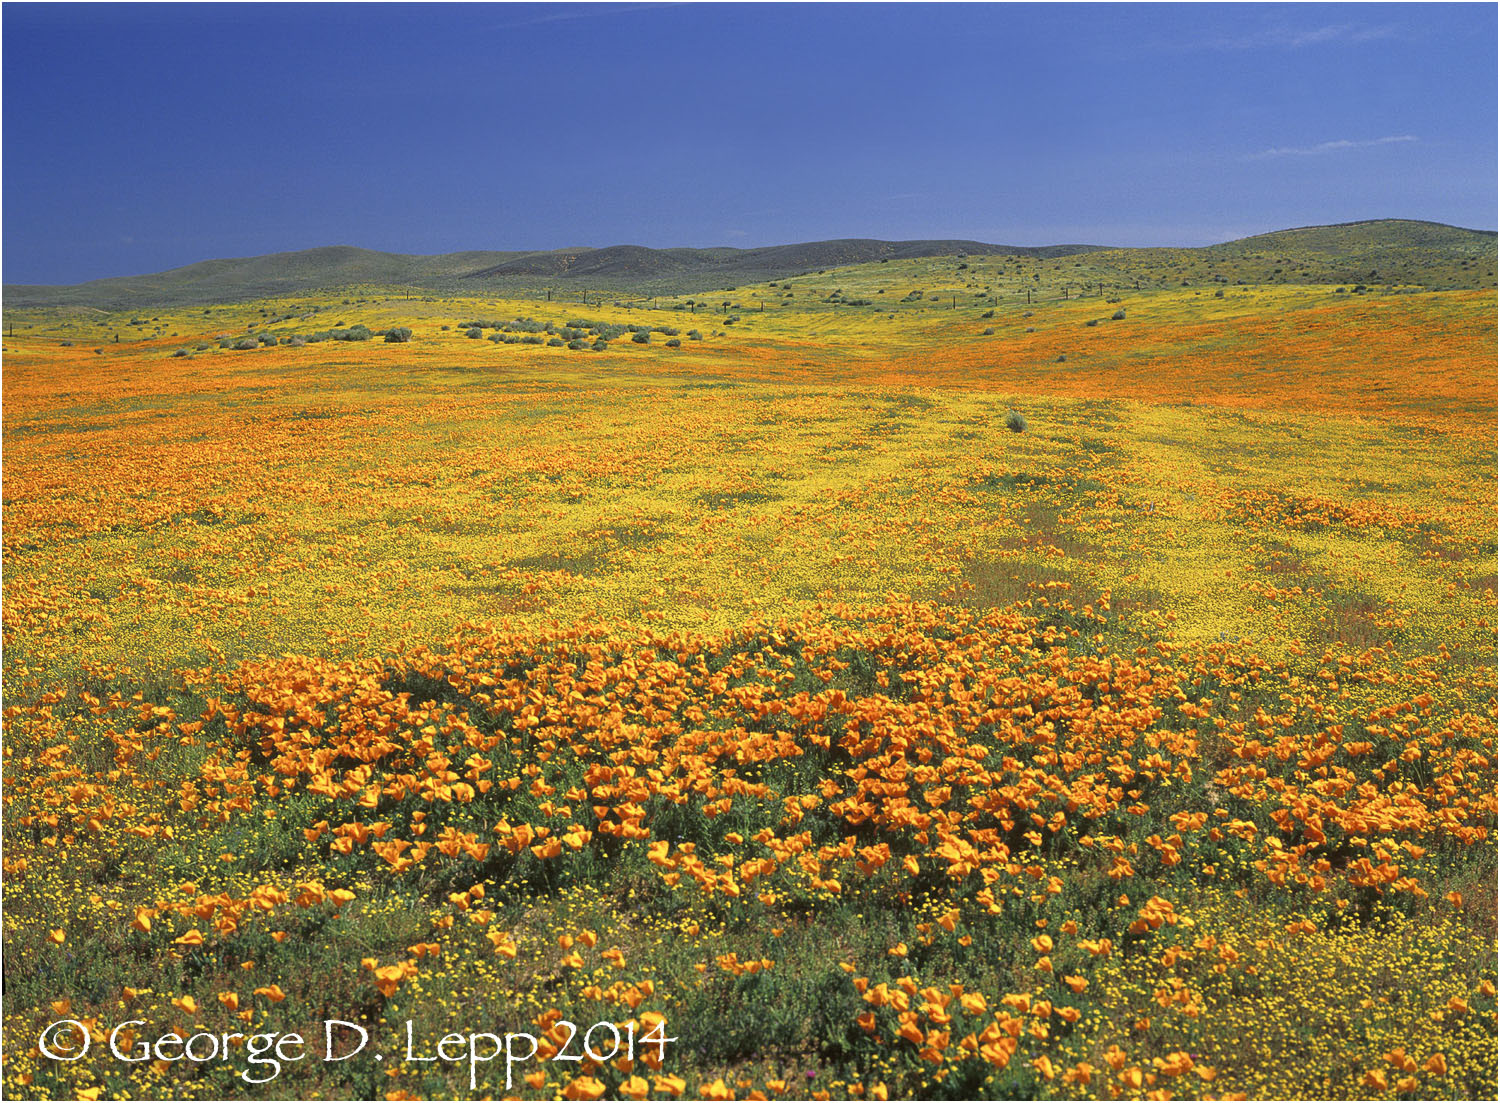 California Poppy.     © George D. Lepp 2014  PW-PO-0363